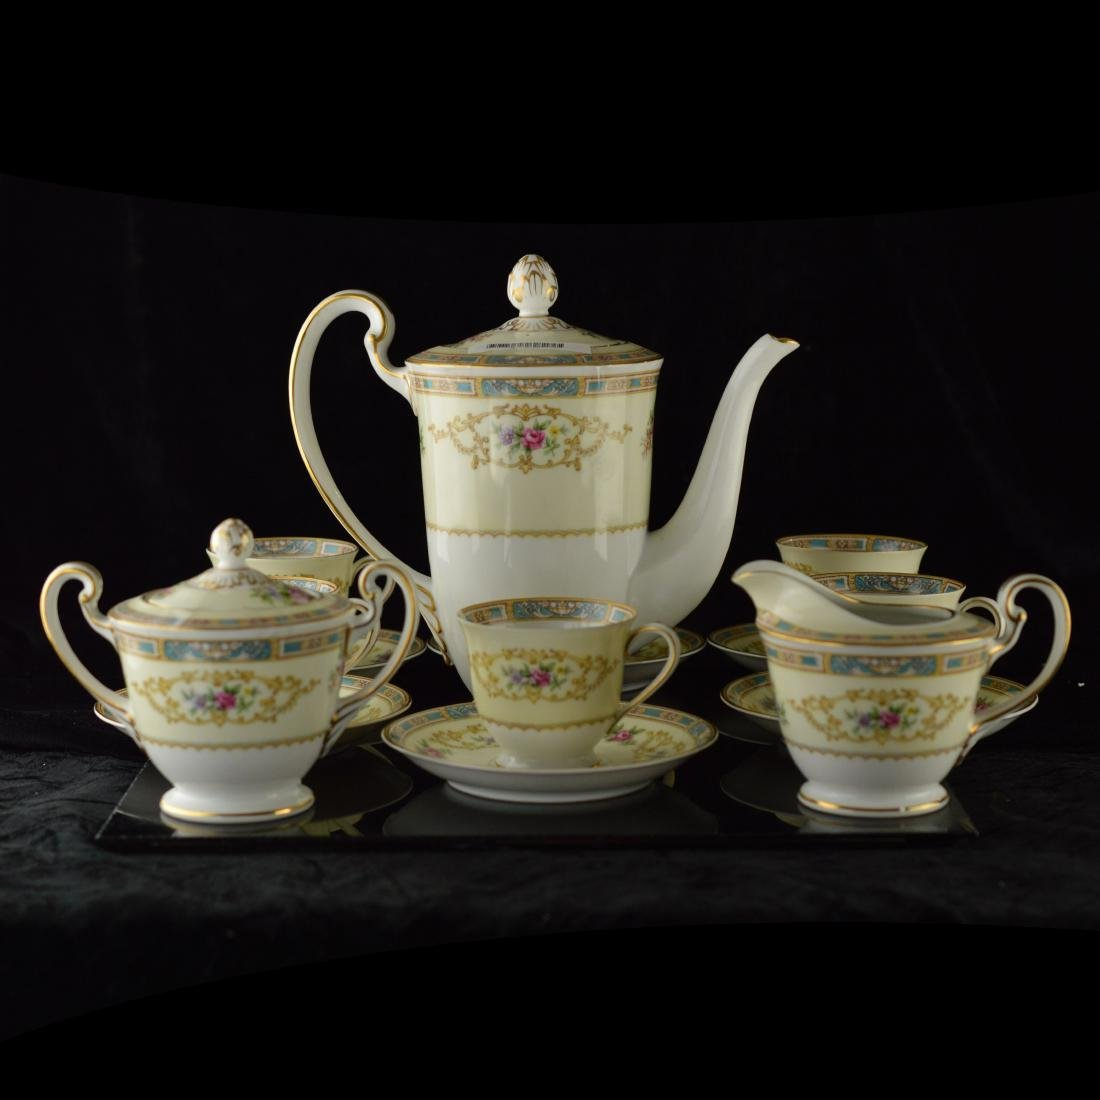 14 pcs Tea Set